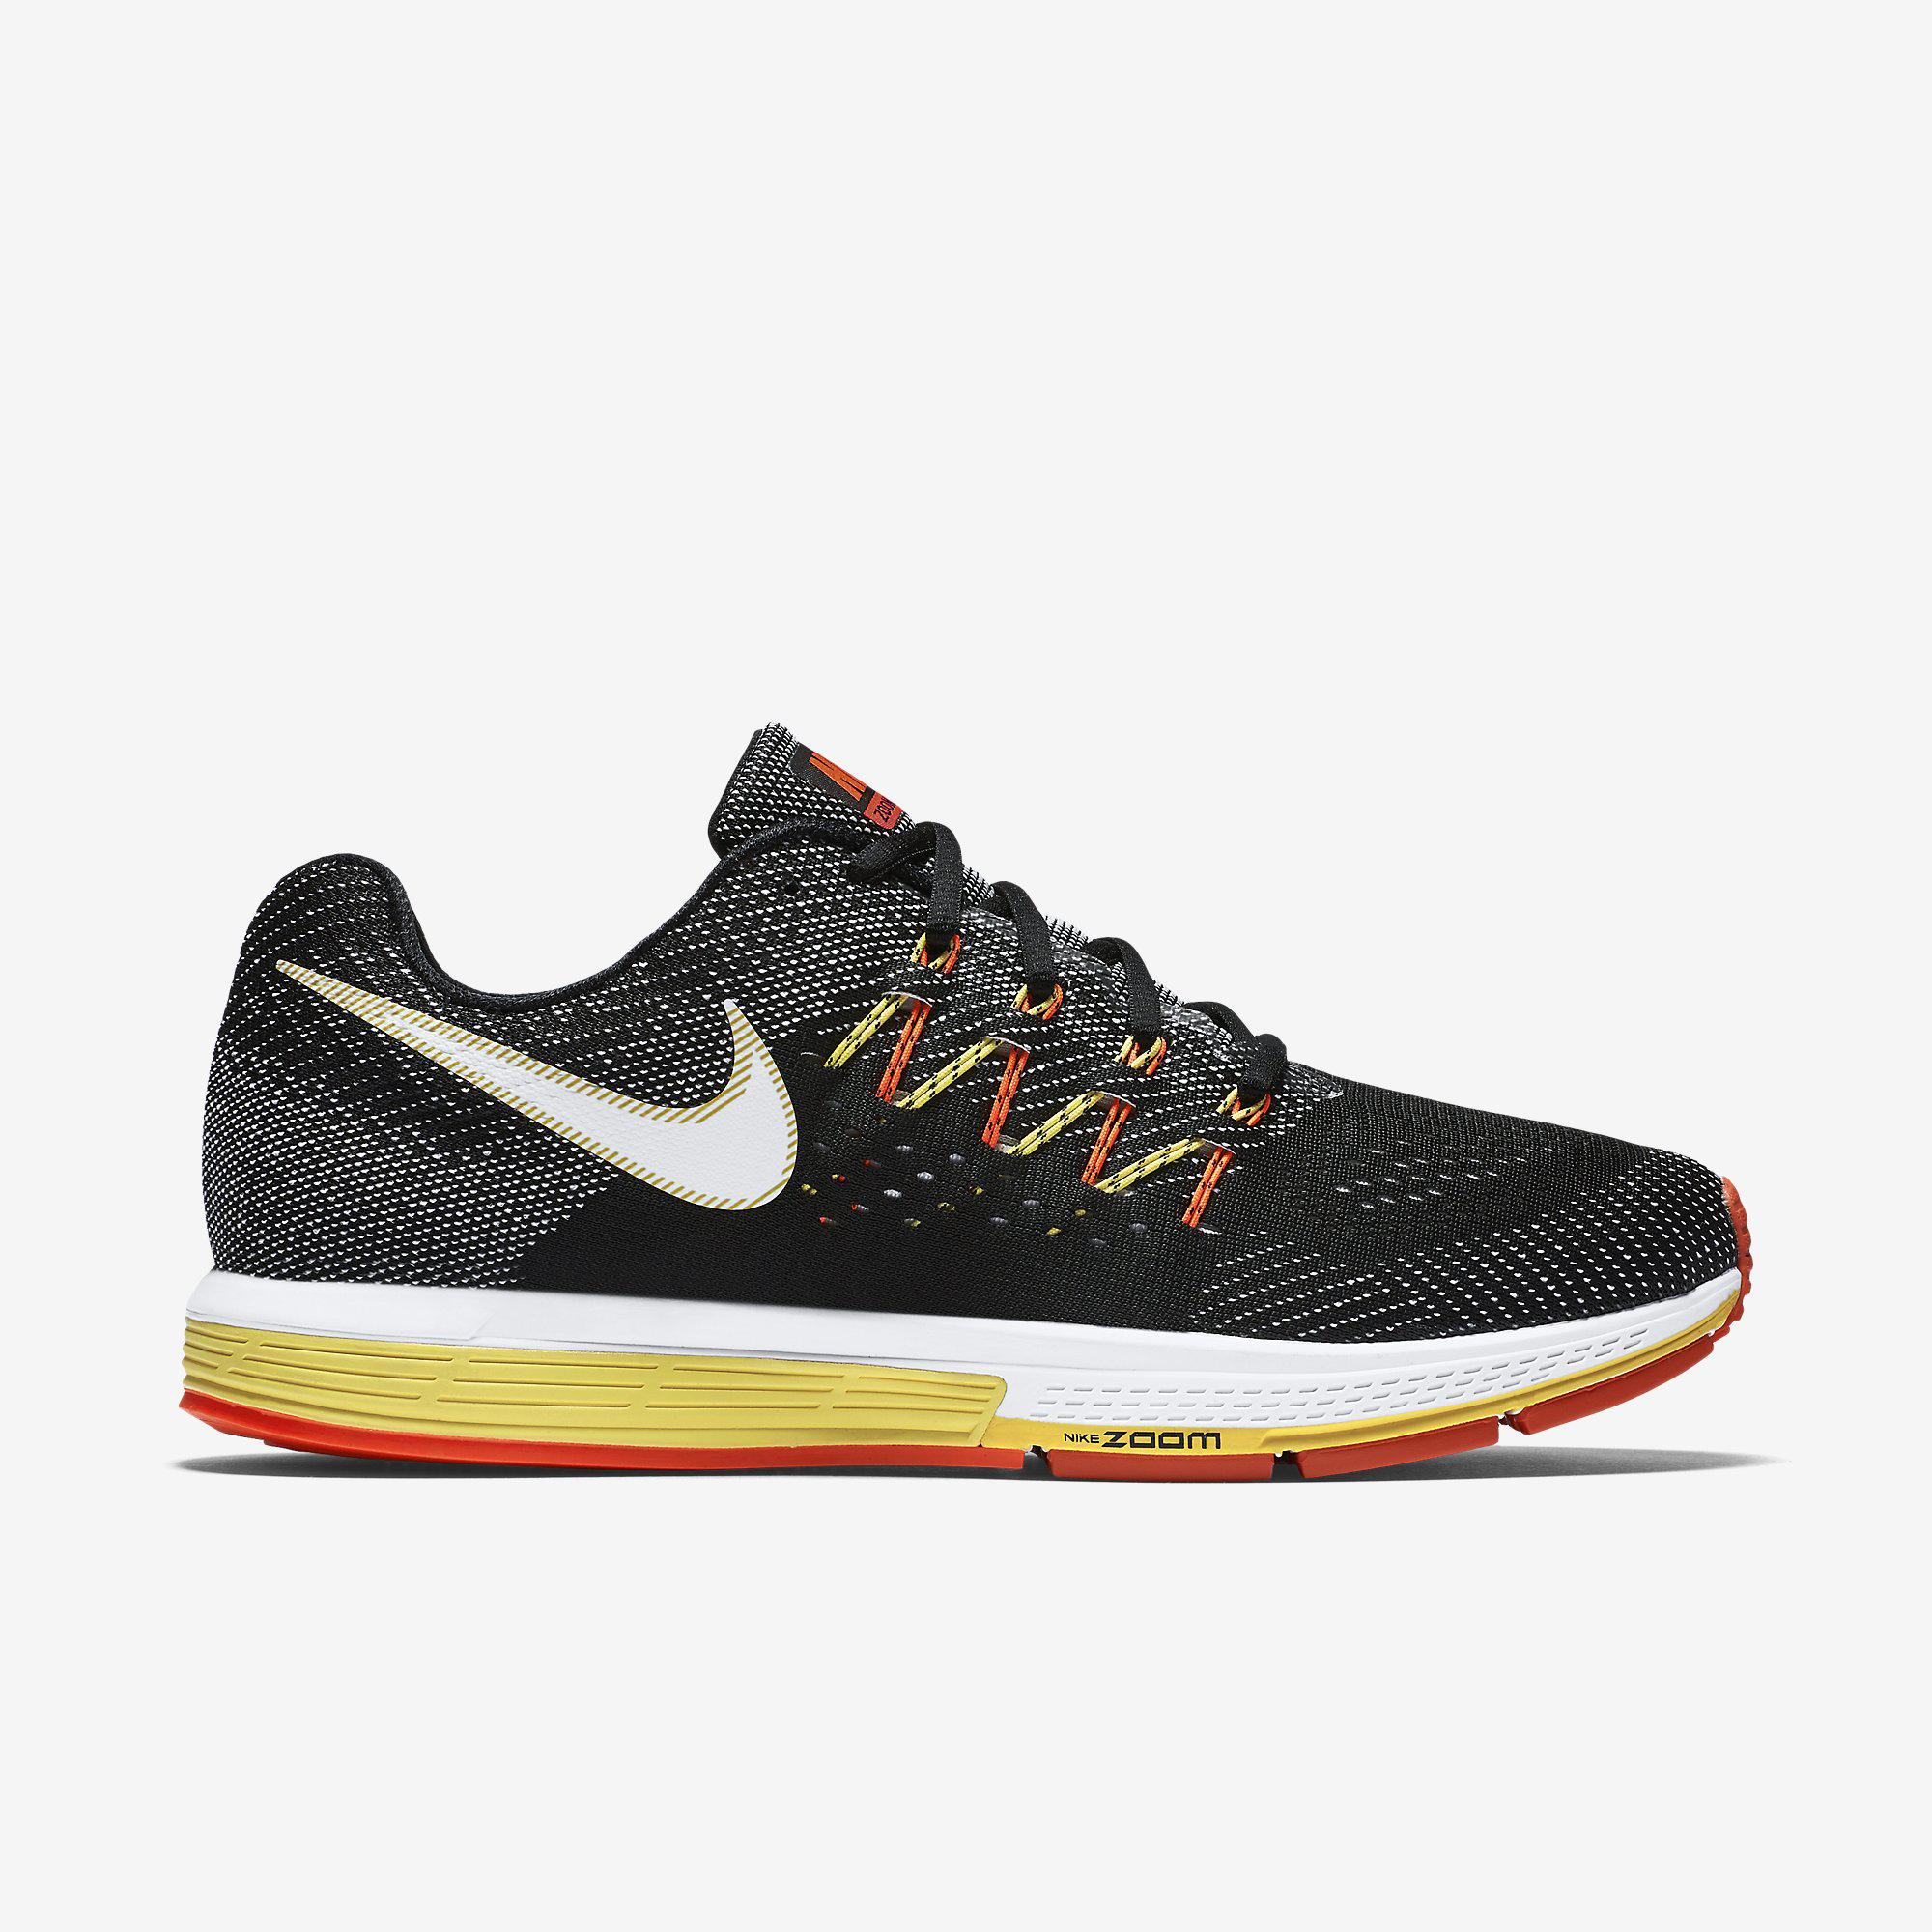 Nike Mens Air Zoom Vomero 10 Running Shoes - Black/Total